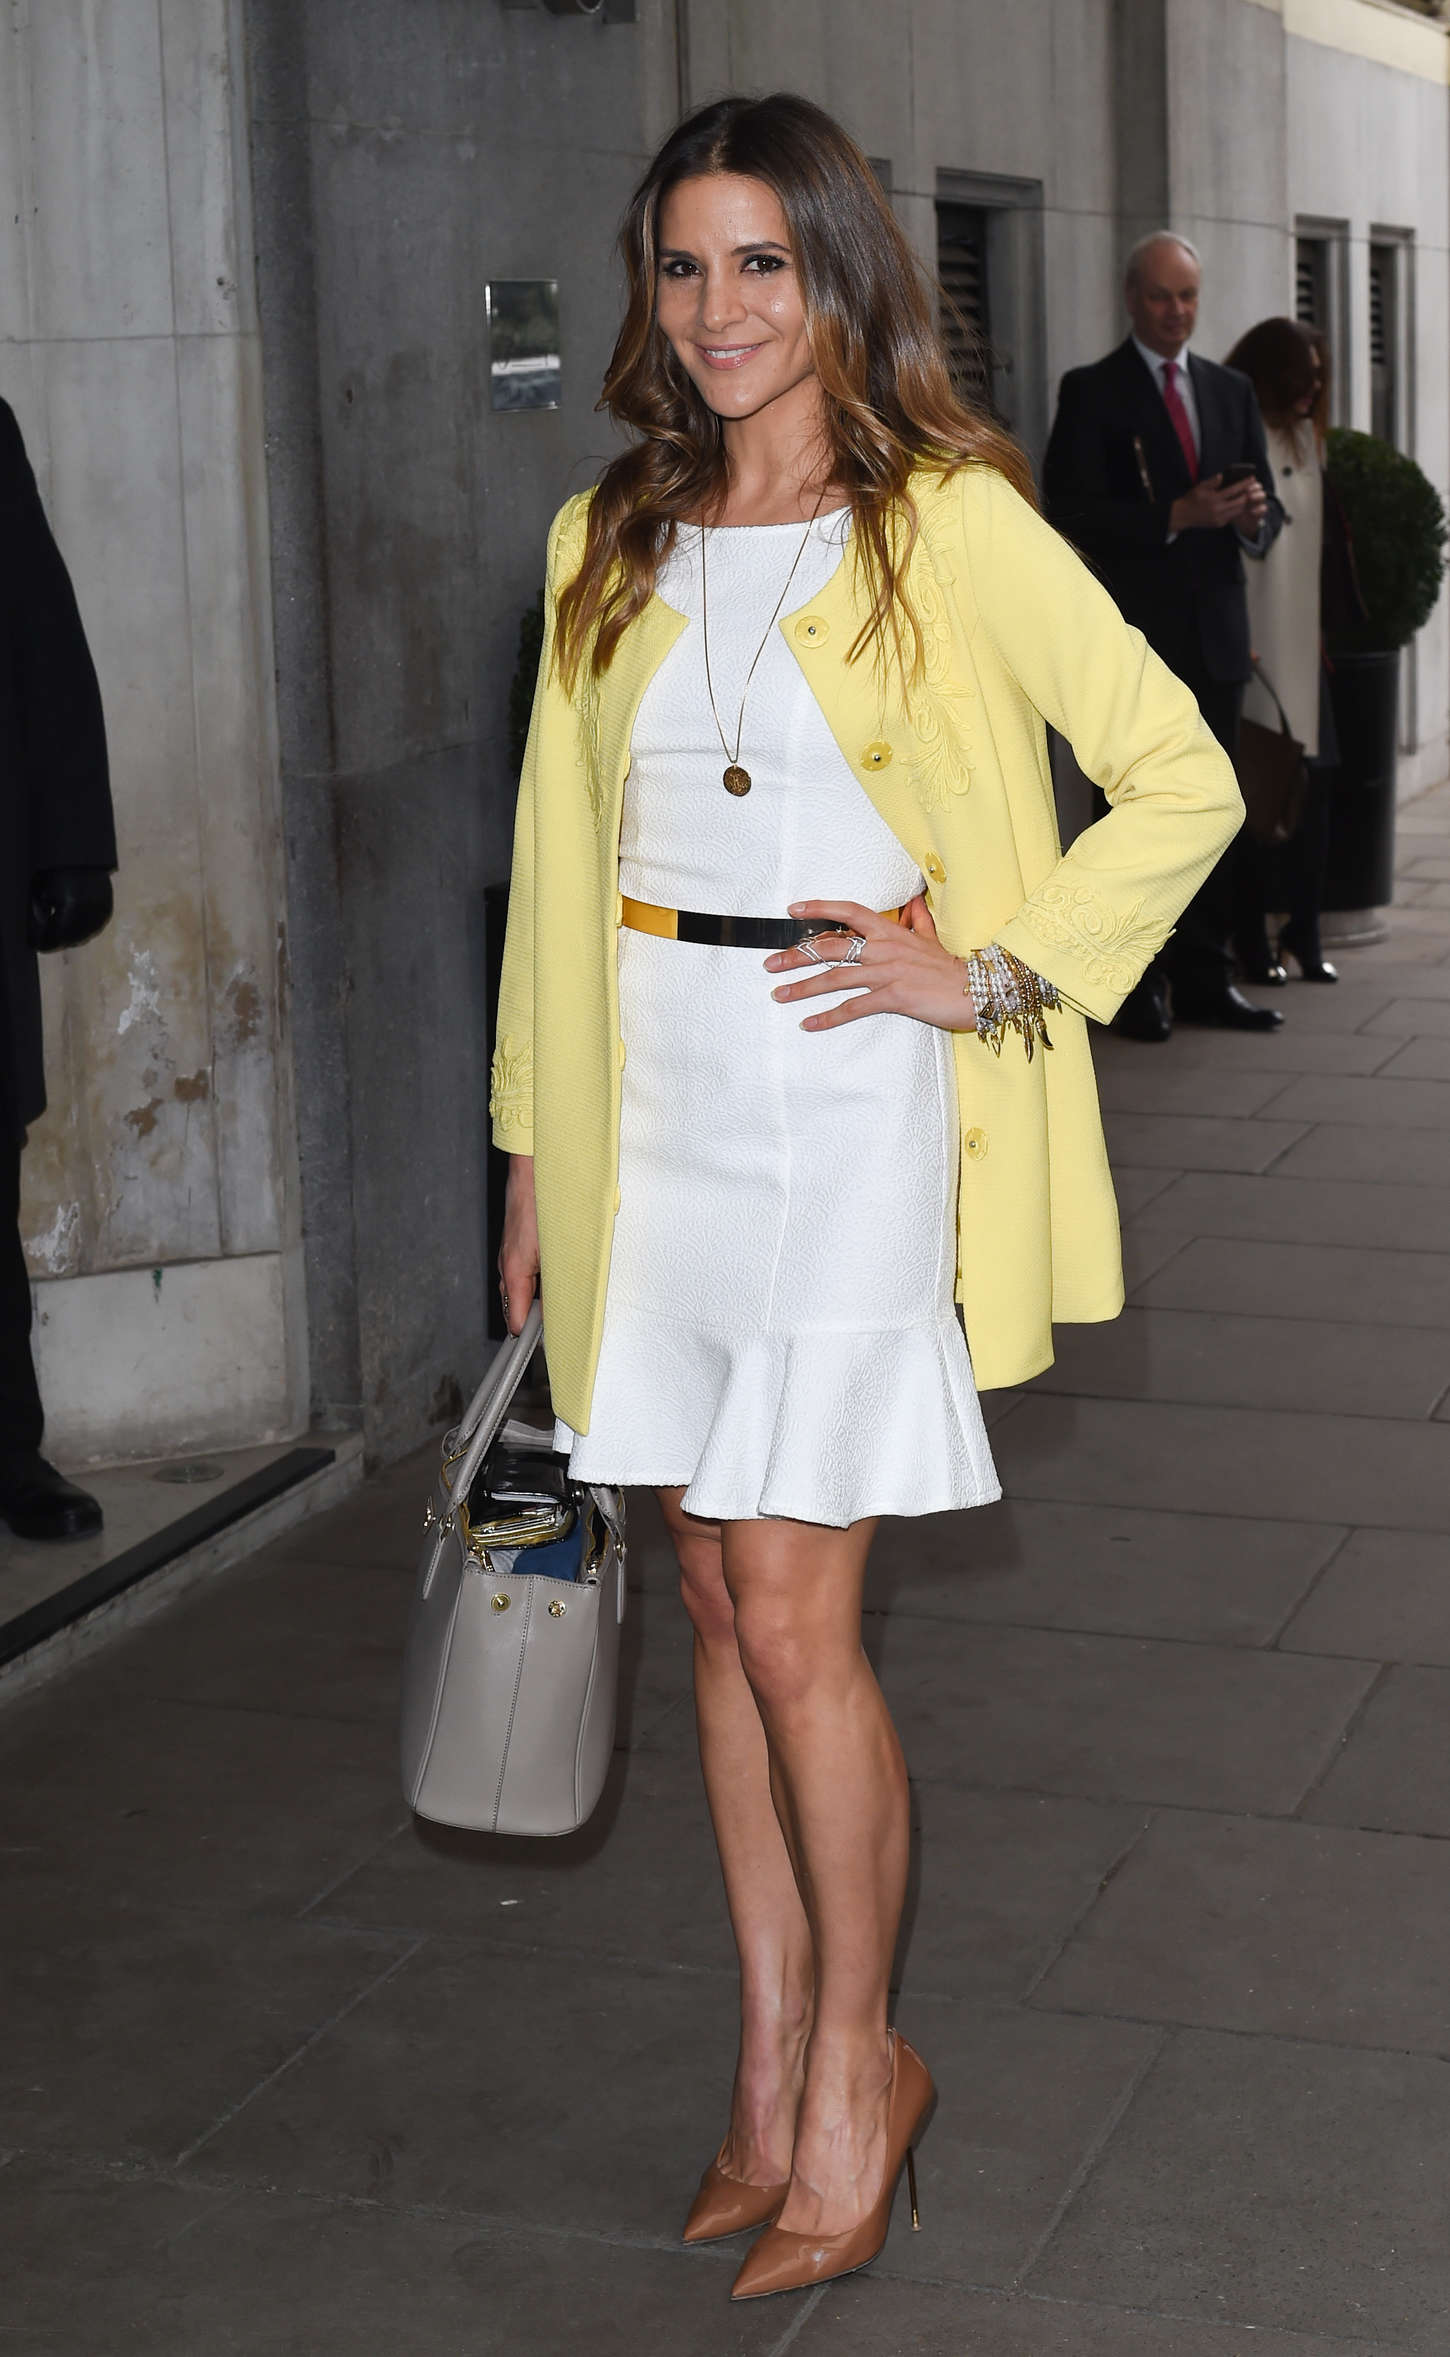 Amanda Byram The Year Of Mexico Lunch in London